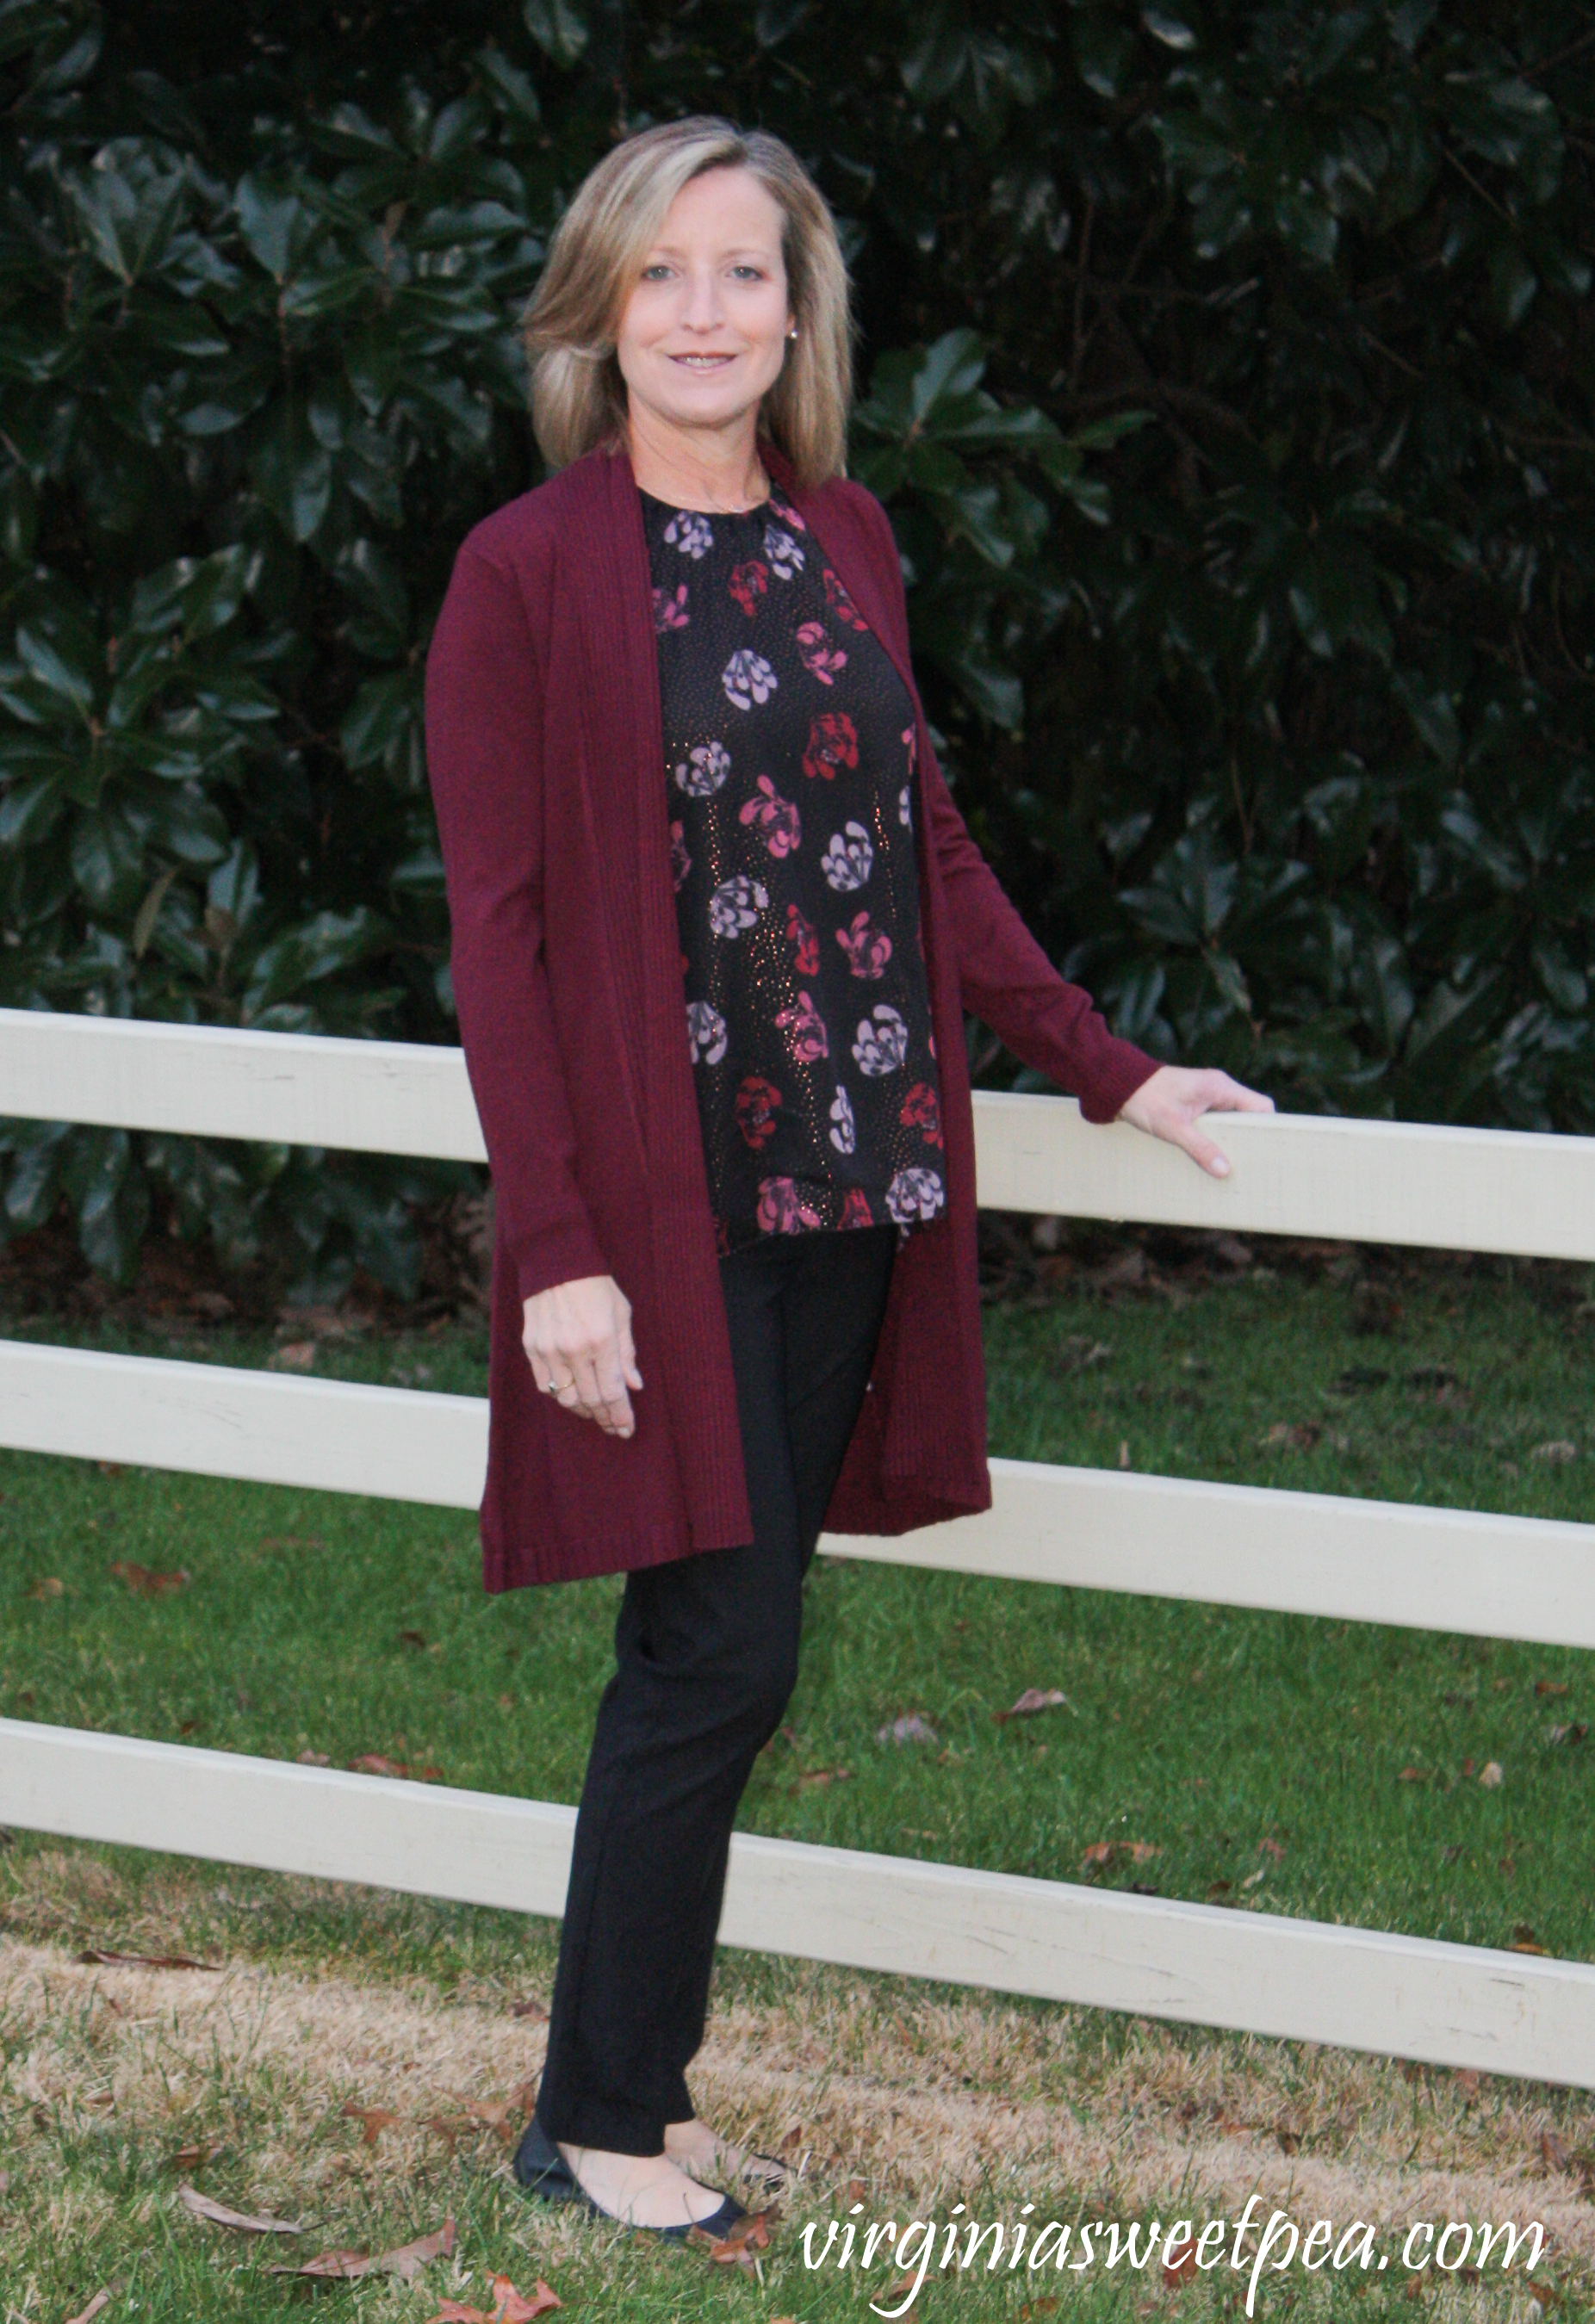 Stitch Fix Review for December 2018 - Vince Camuto Hadara Blouse with EVOLUTION BY CYRUS Nixxie Textured Back Duster Cardigan